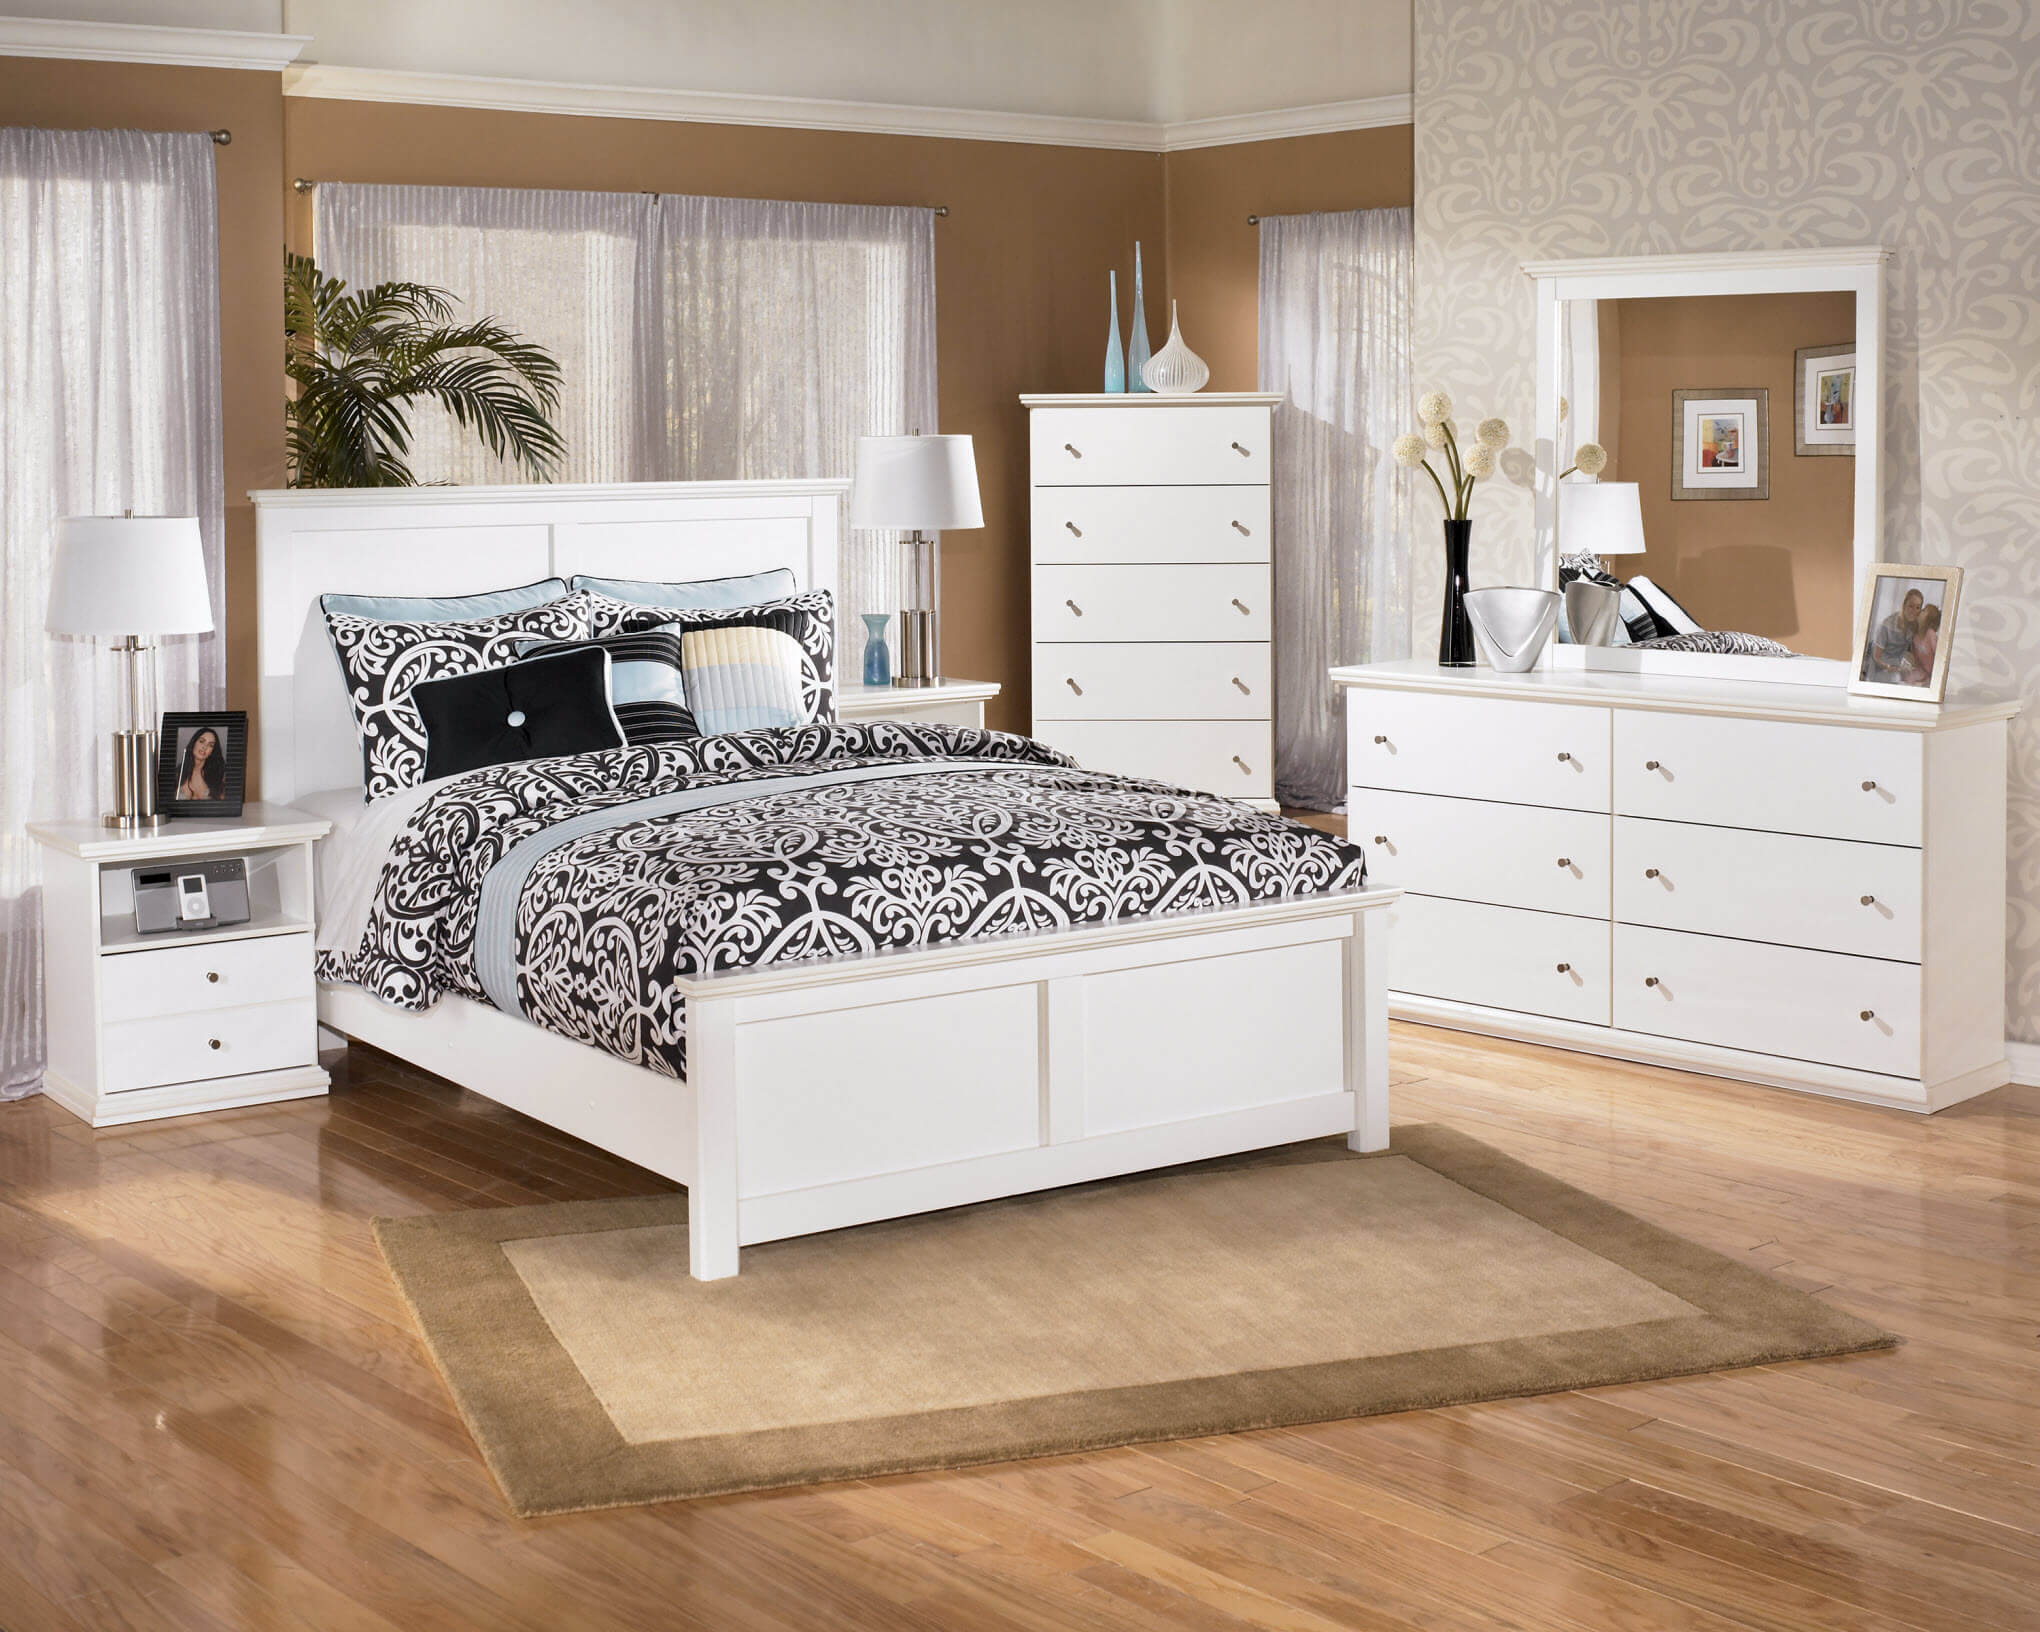 B139 Ashley Bostwick Shoals White Bedroom Set